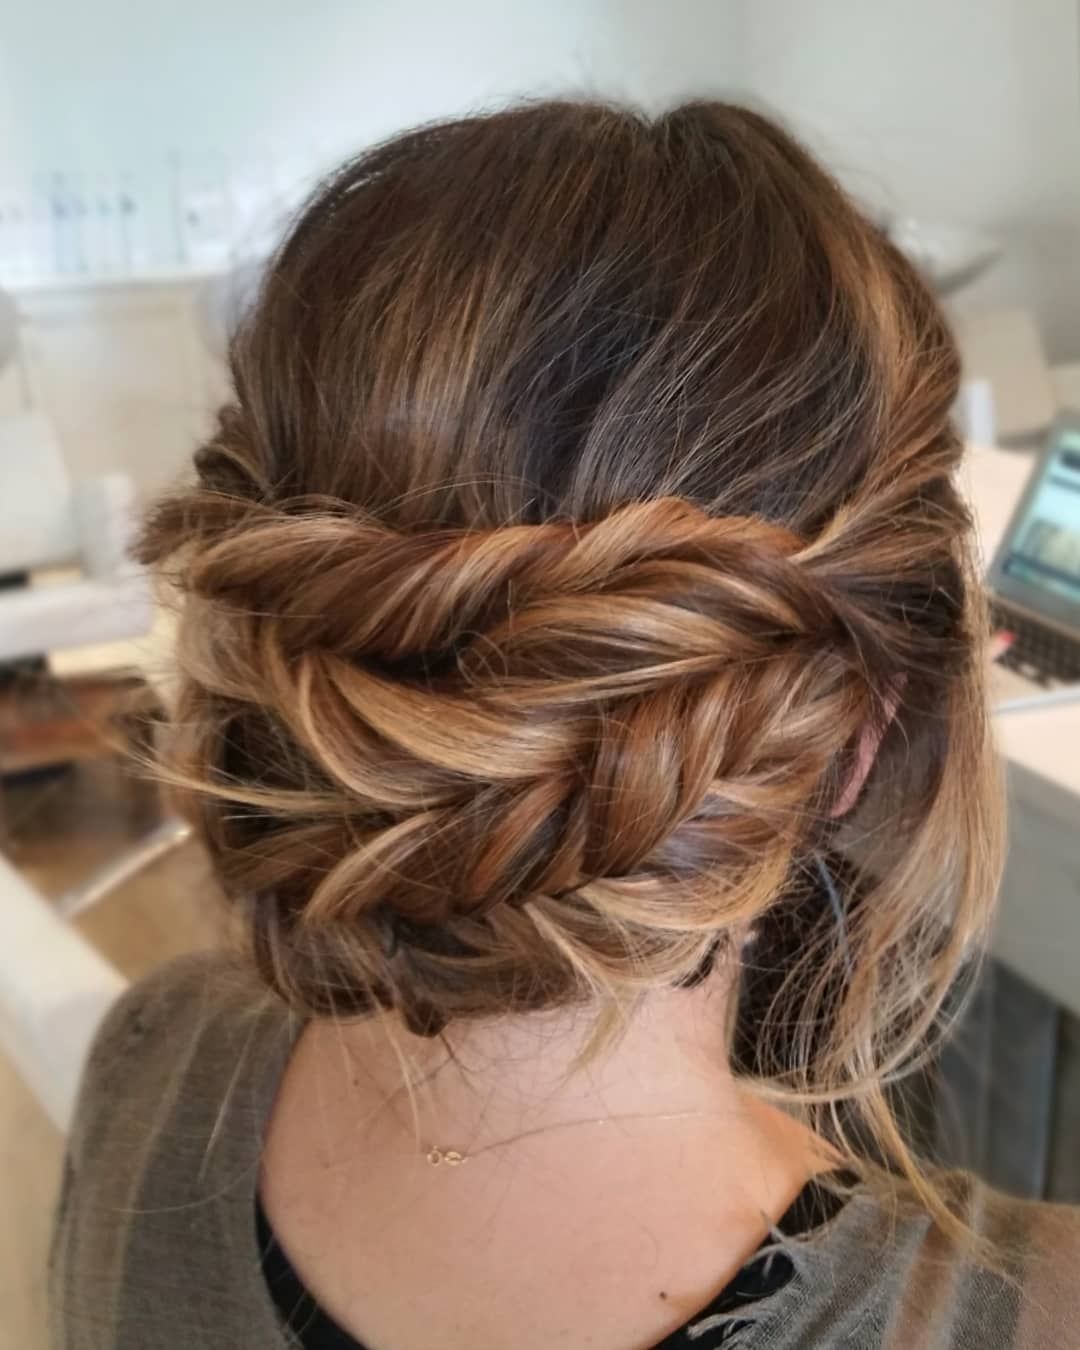 Updo Hairstyles For Wedding Guests: Beautiful Whimsical Braided Updo